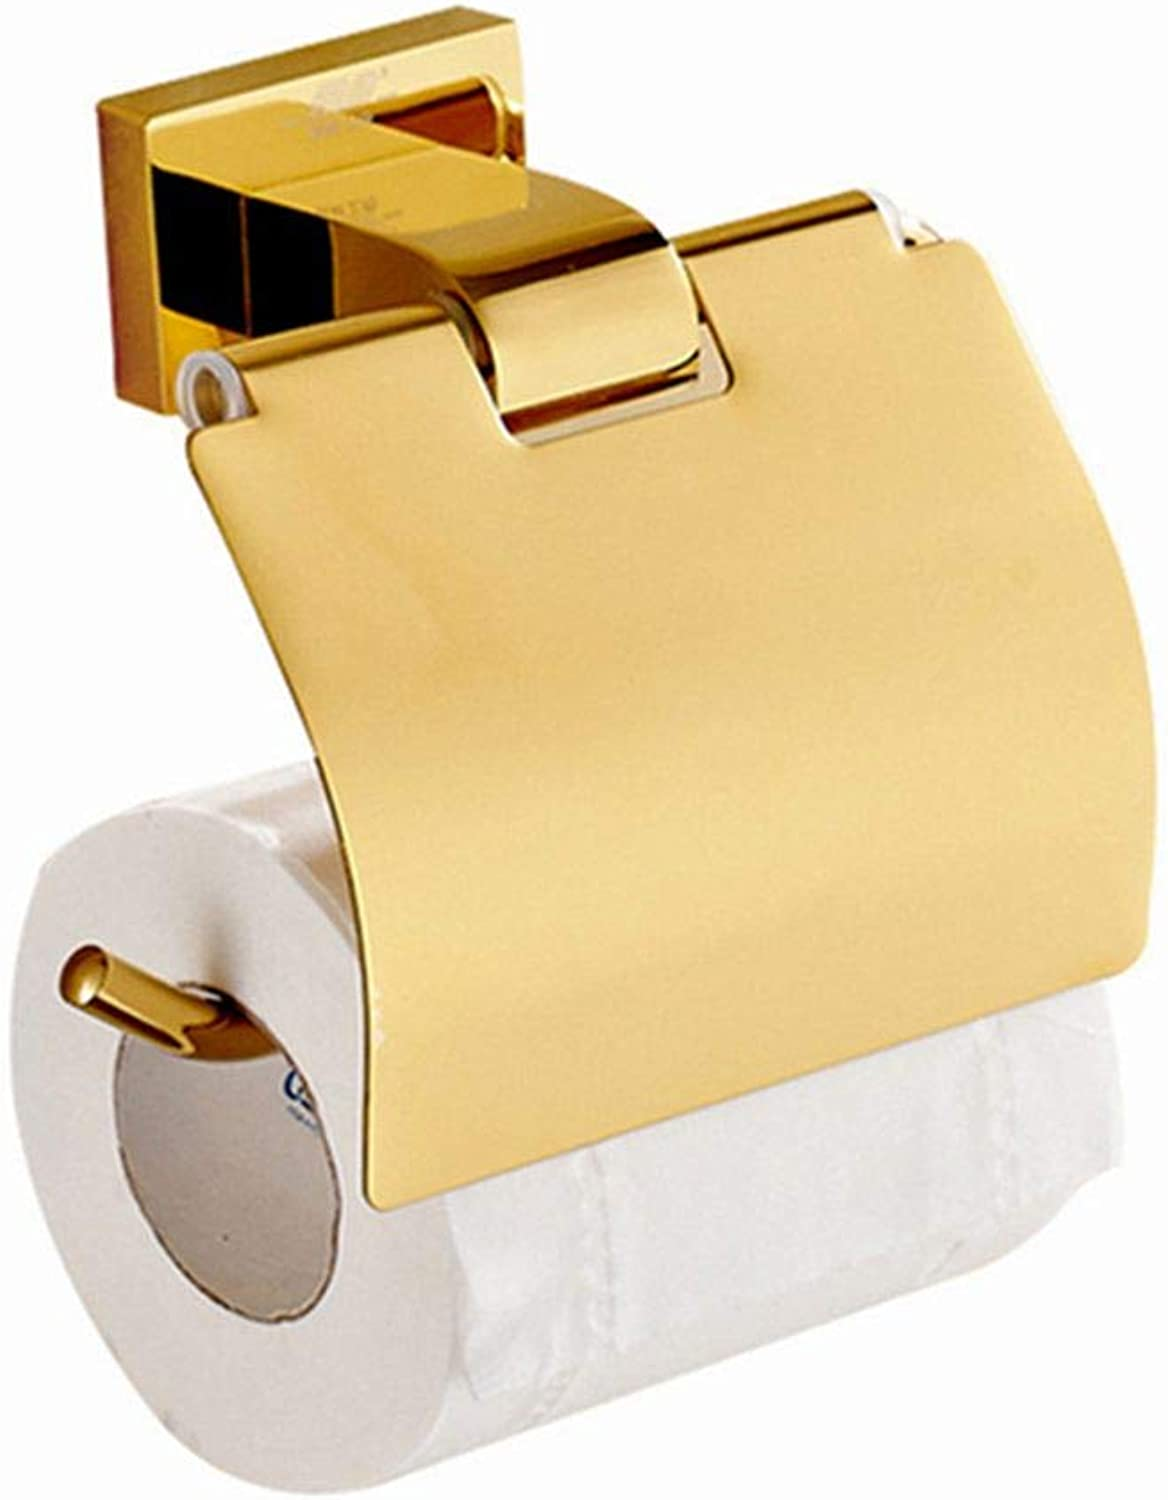 LUDSUY Toilet Paper Holder Luxury Polished golden with Cover Wall Mounted Brass Toilet Paper Hanger Bathroom Accessories